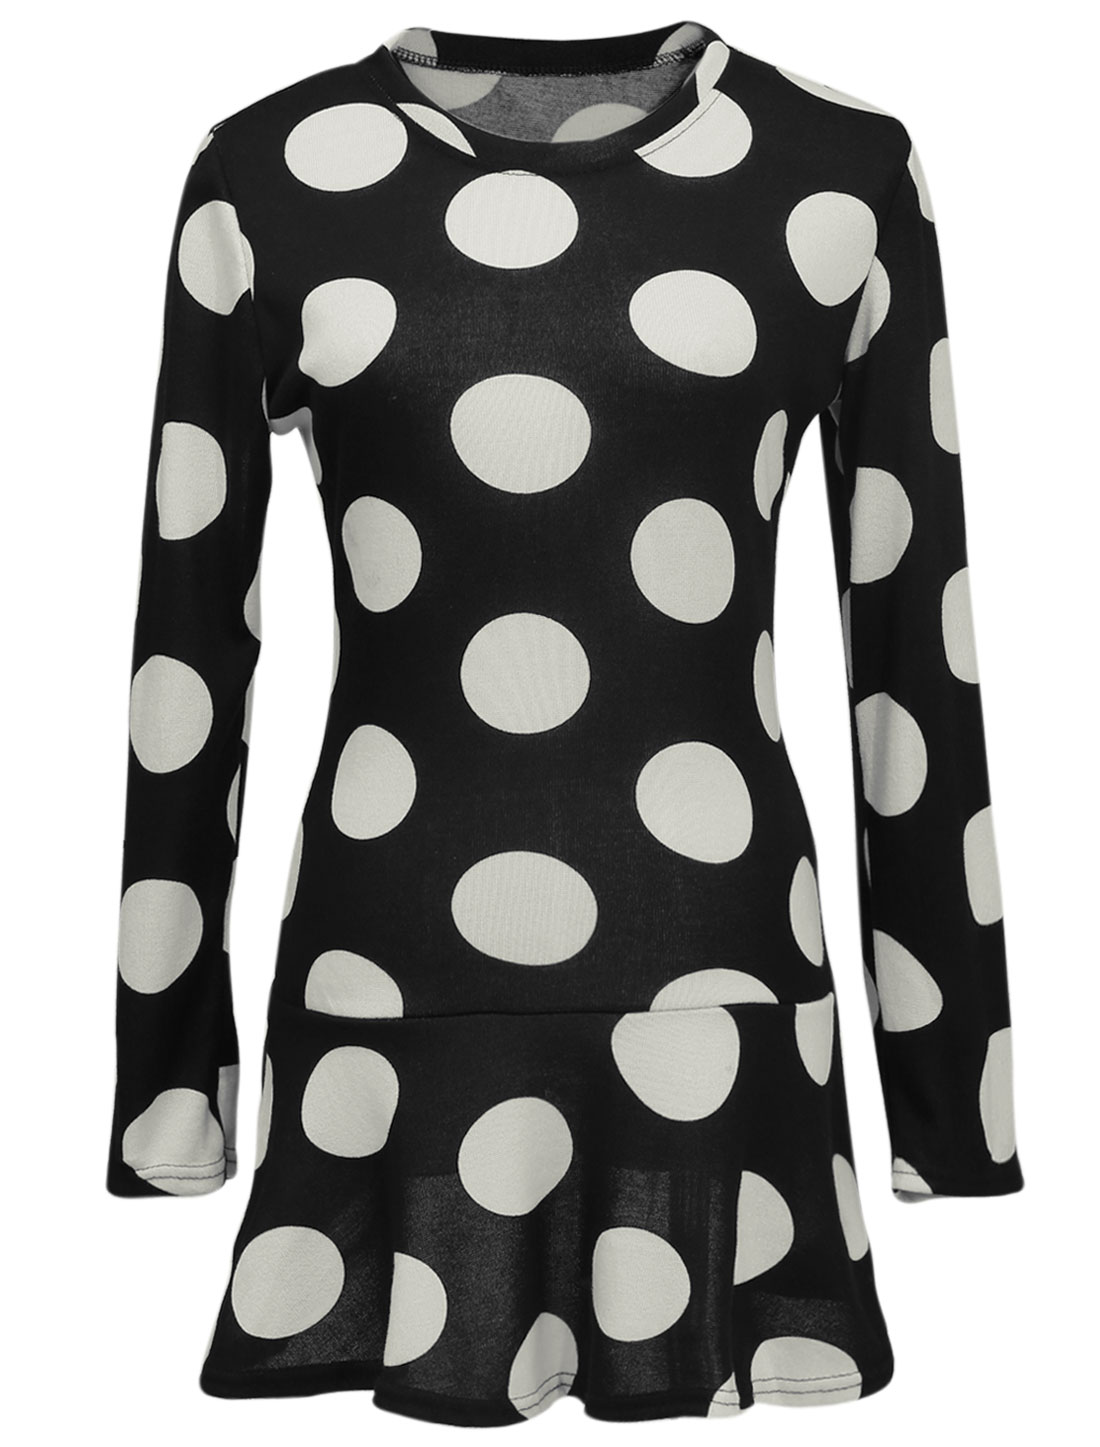 Lady Long Sleeve Round Neck Dots Pattern Ruffled Hem Dress Black M